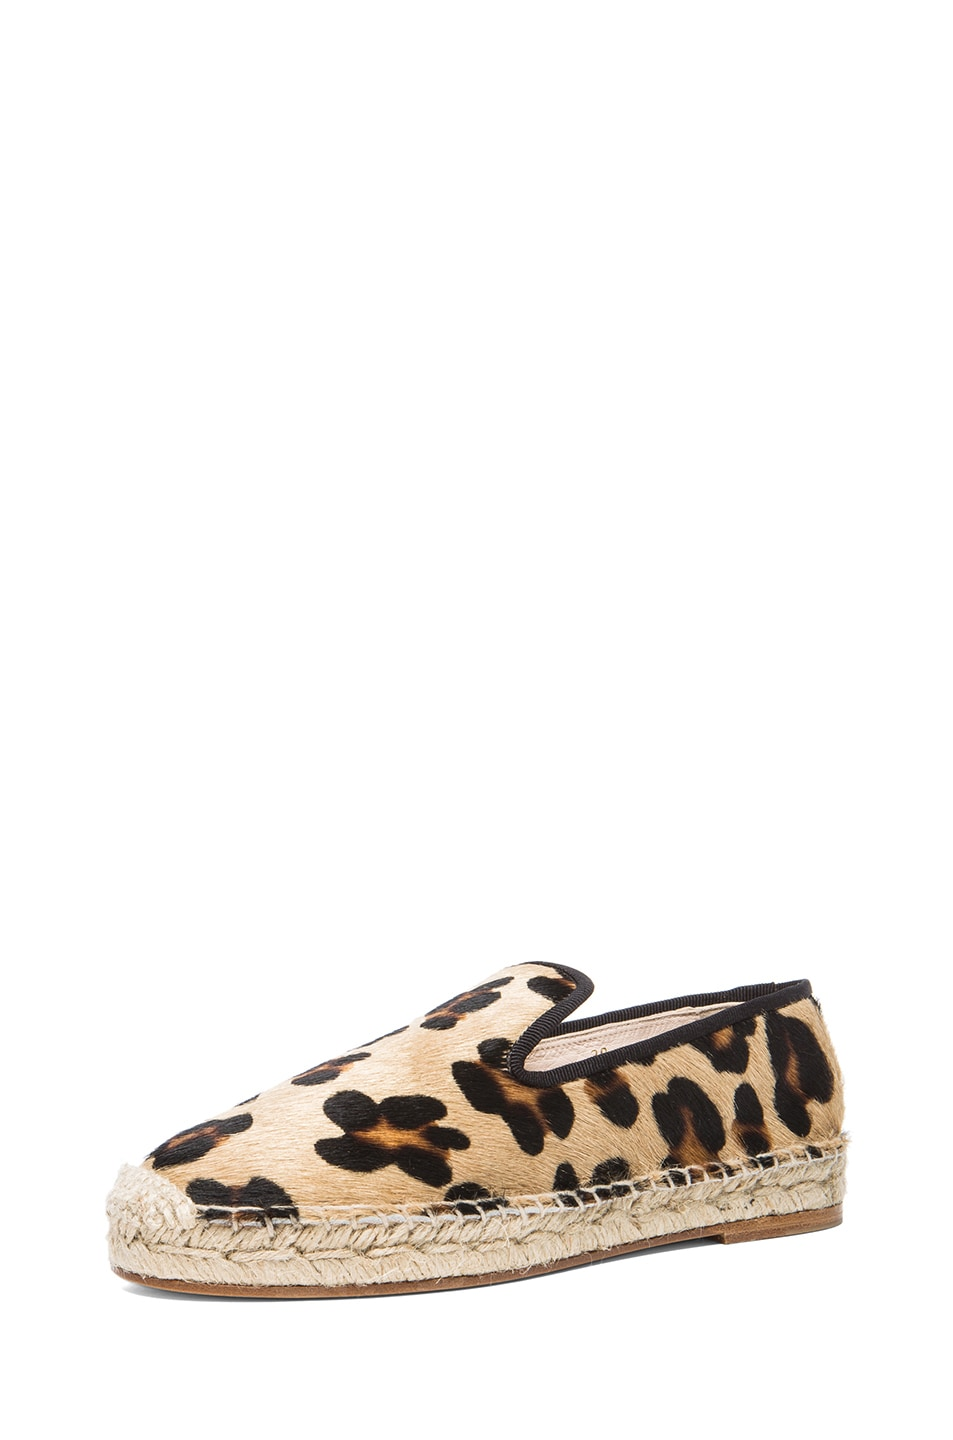 Image 2 of elysewalker los angeles Calf Hair Espadrilles in Leopard